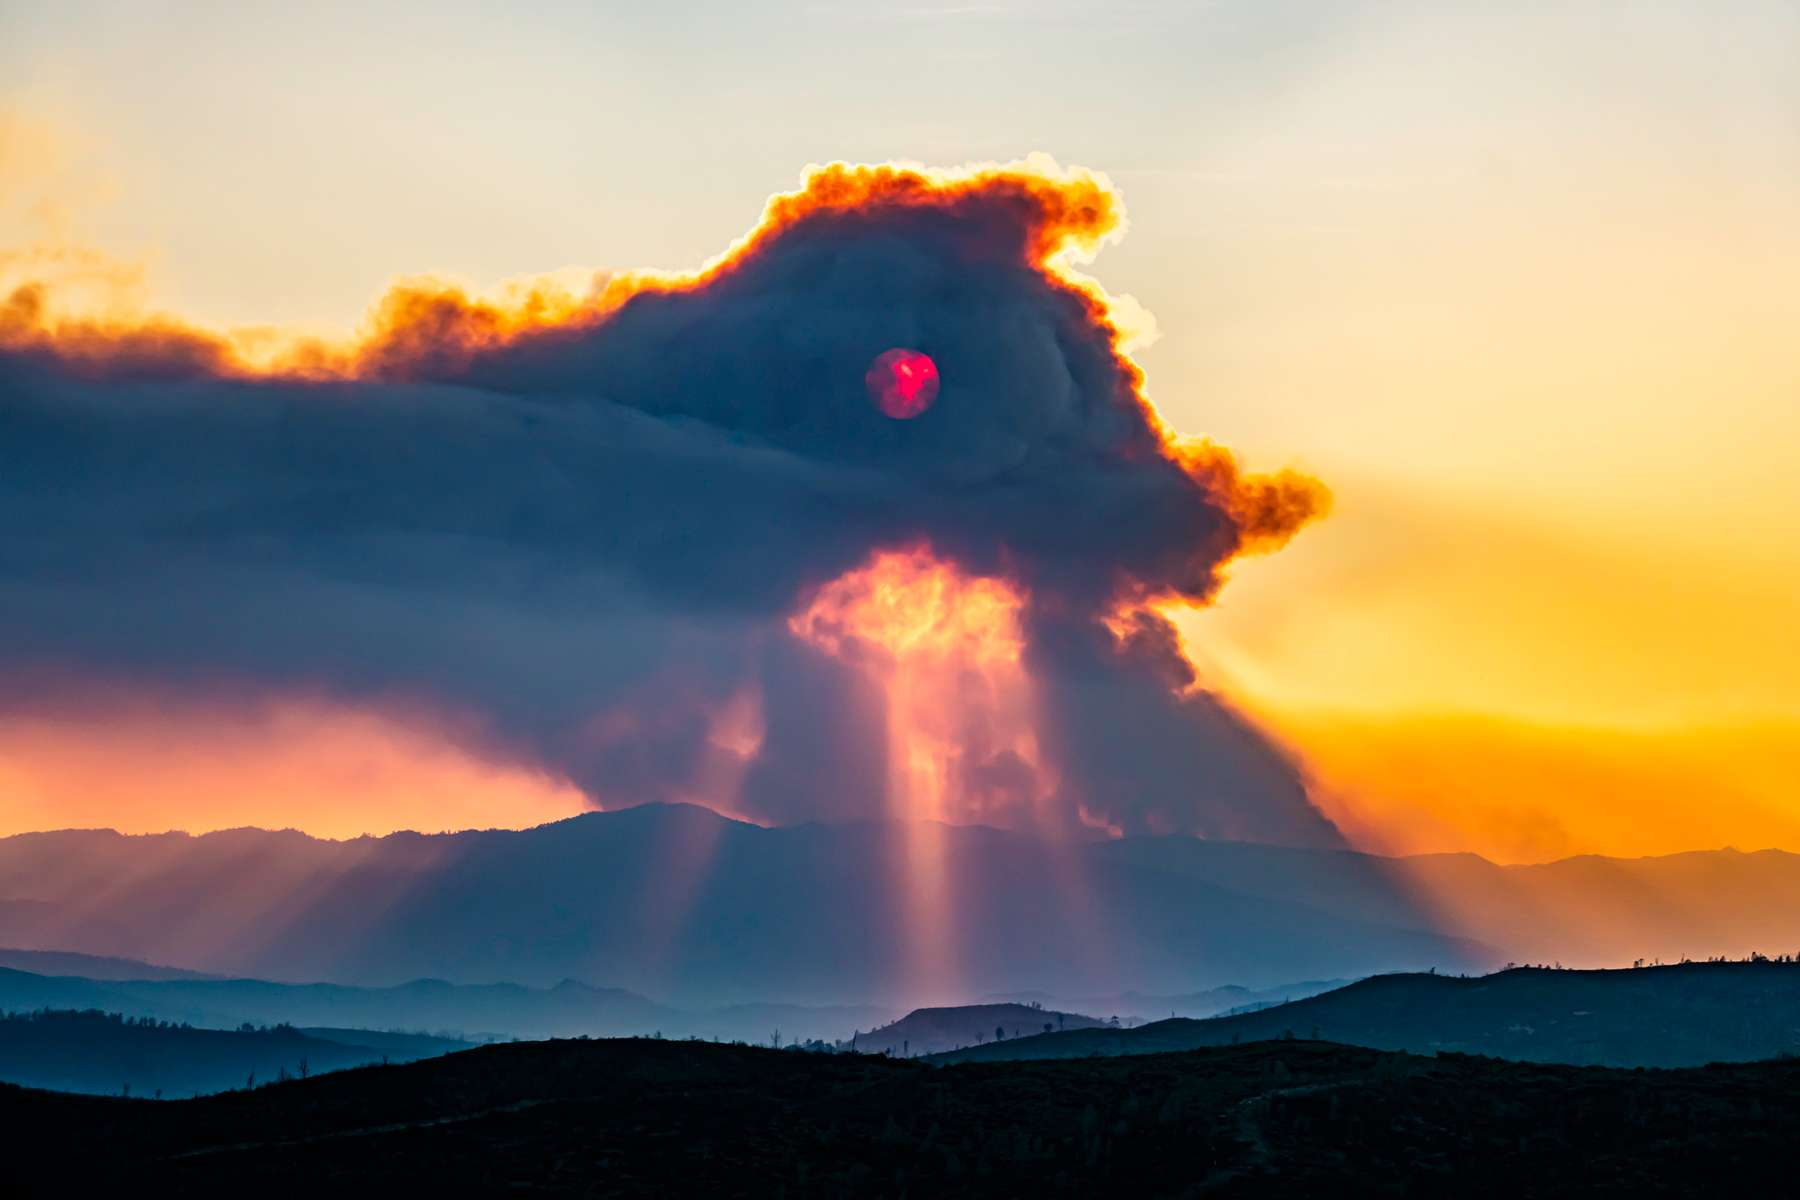 Sunset on the Kincade Fire in Sonoma County, California.